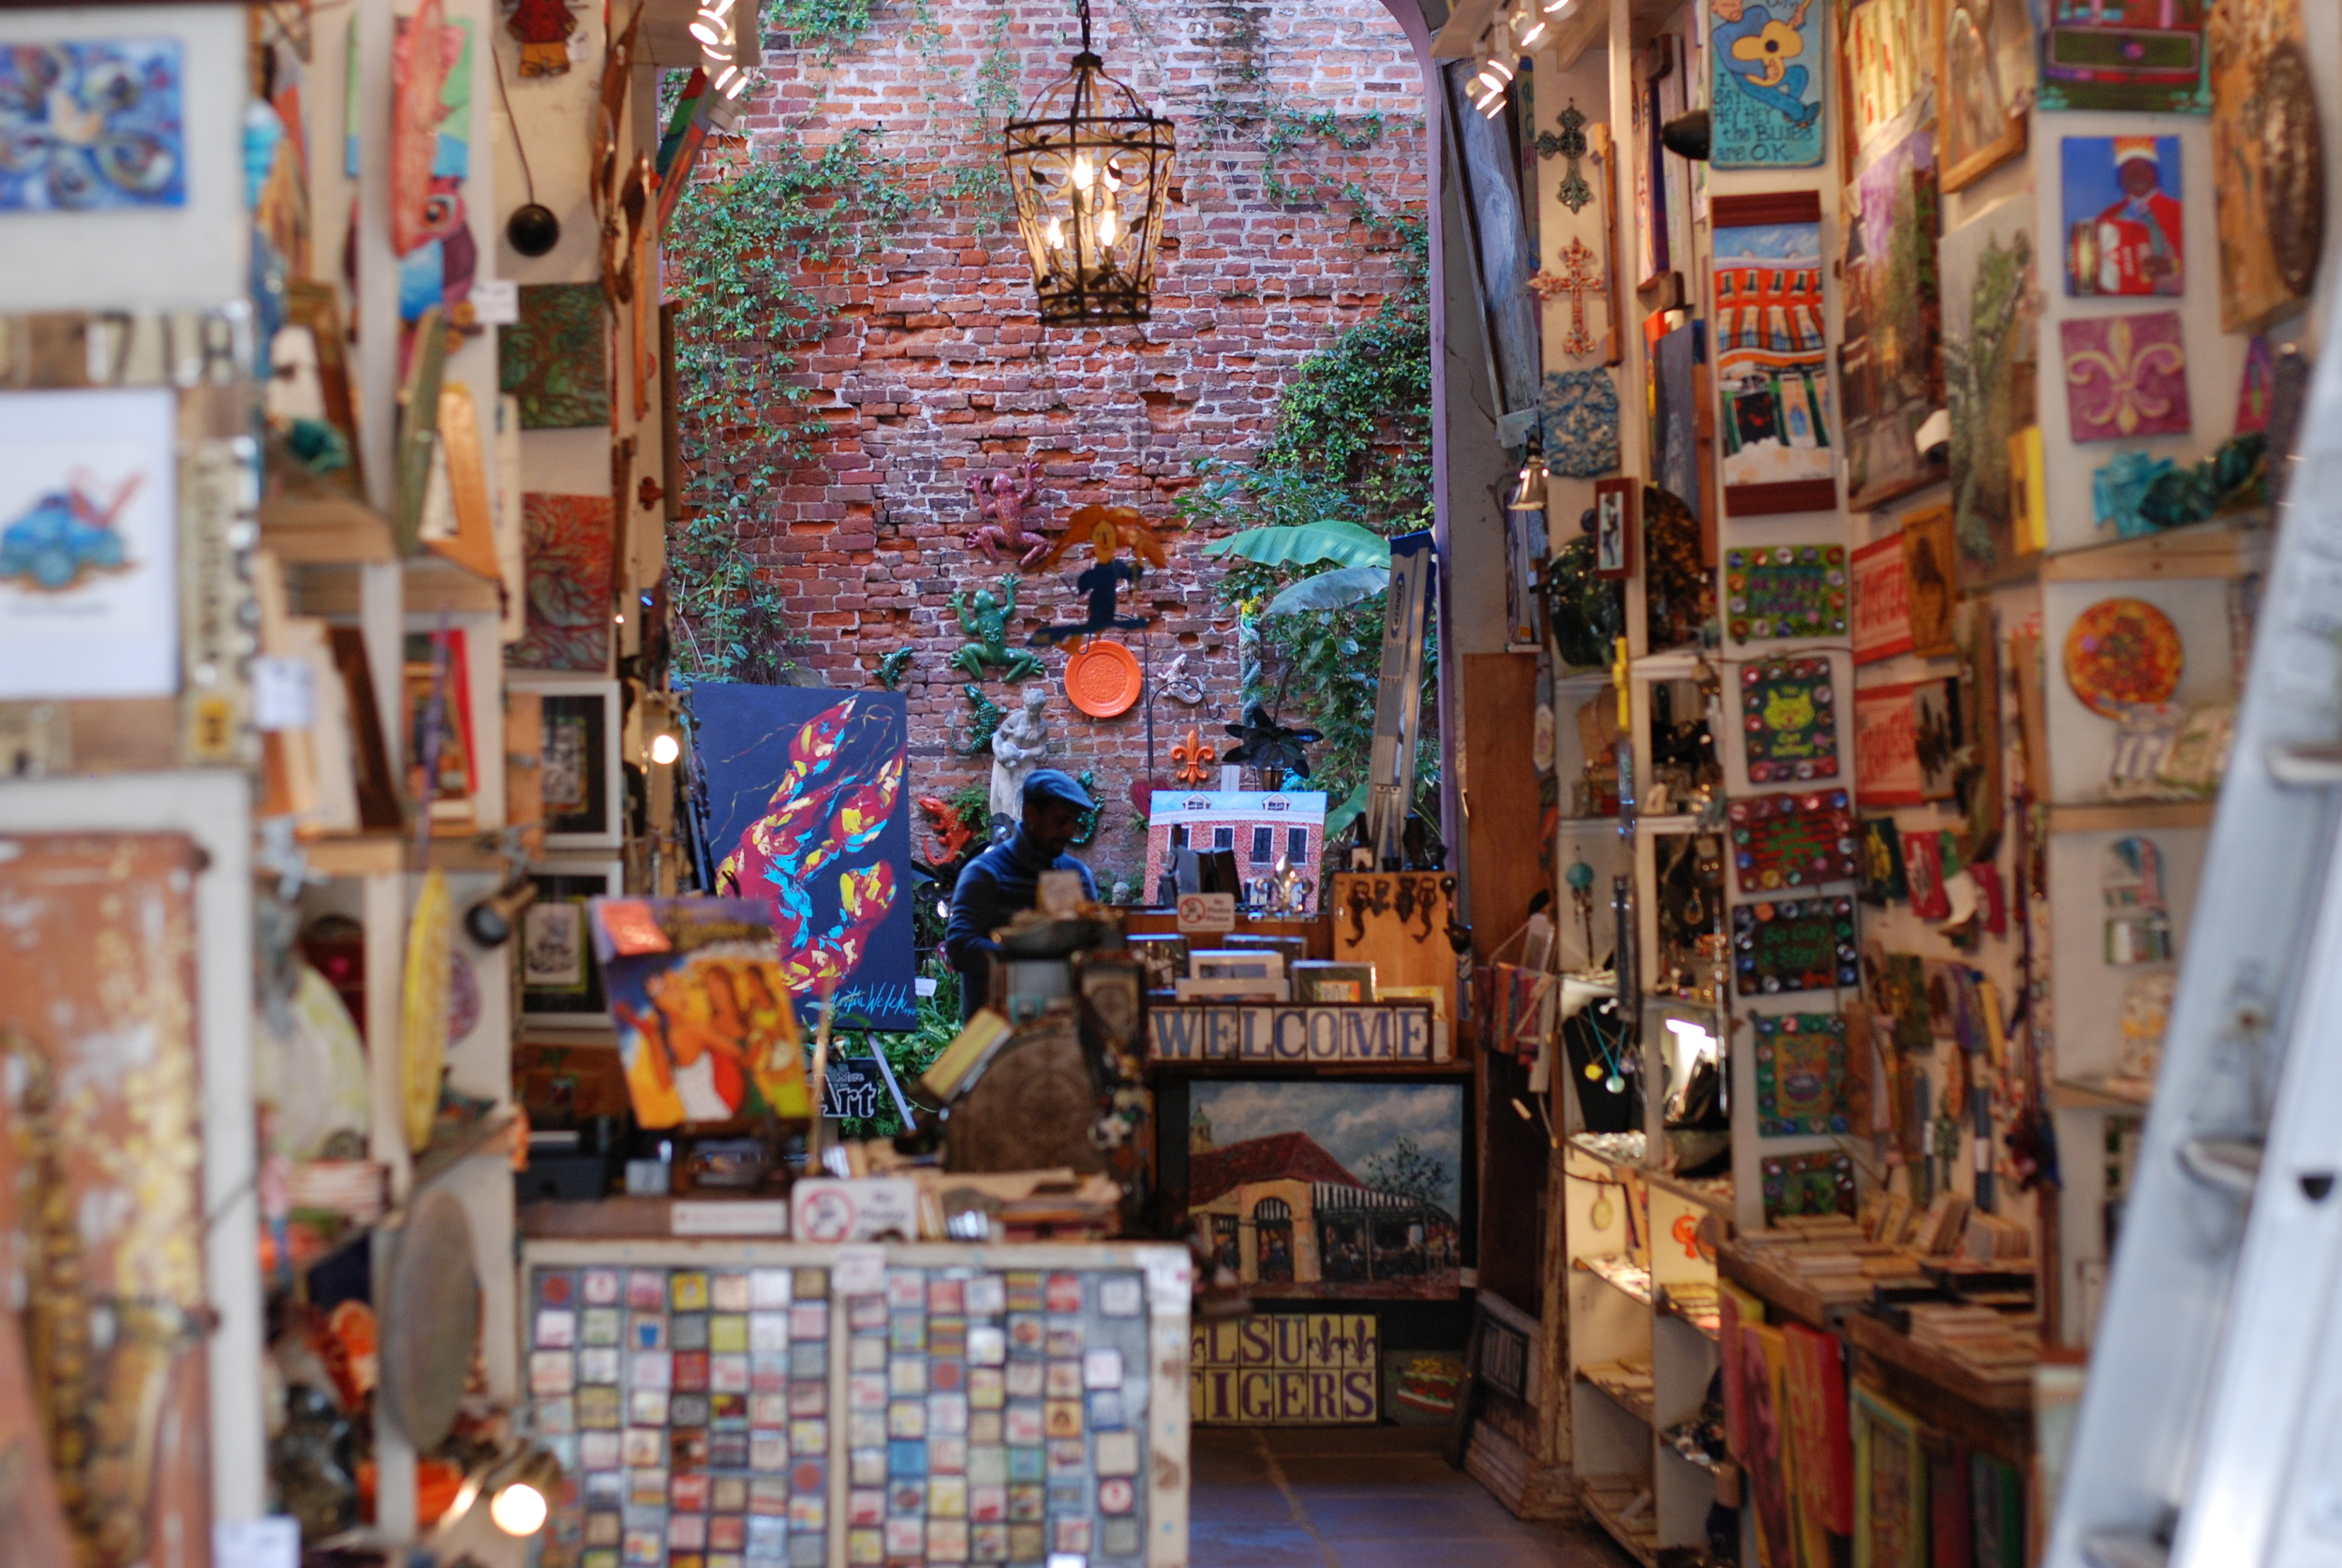 One of the many beautiful art galleries along Royal Street